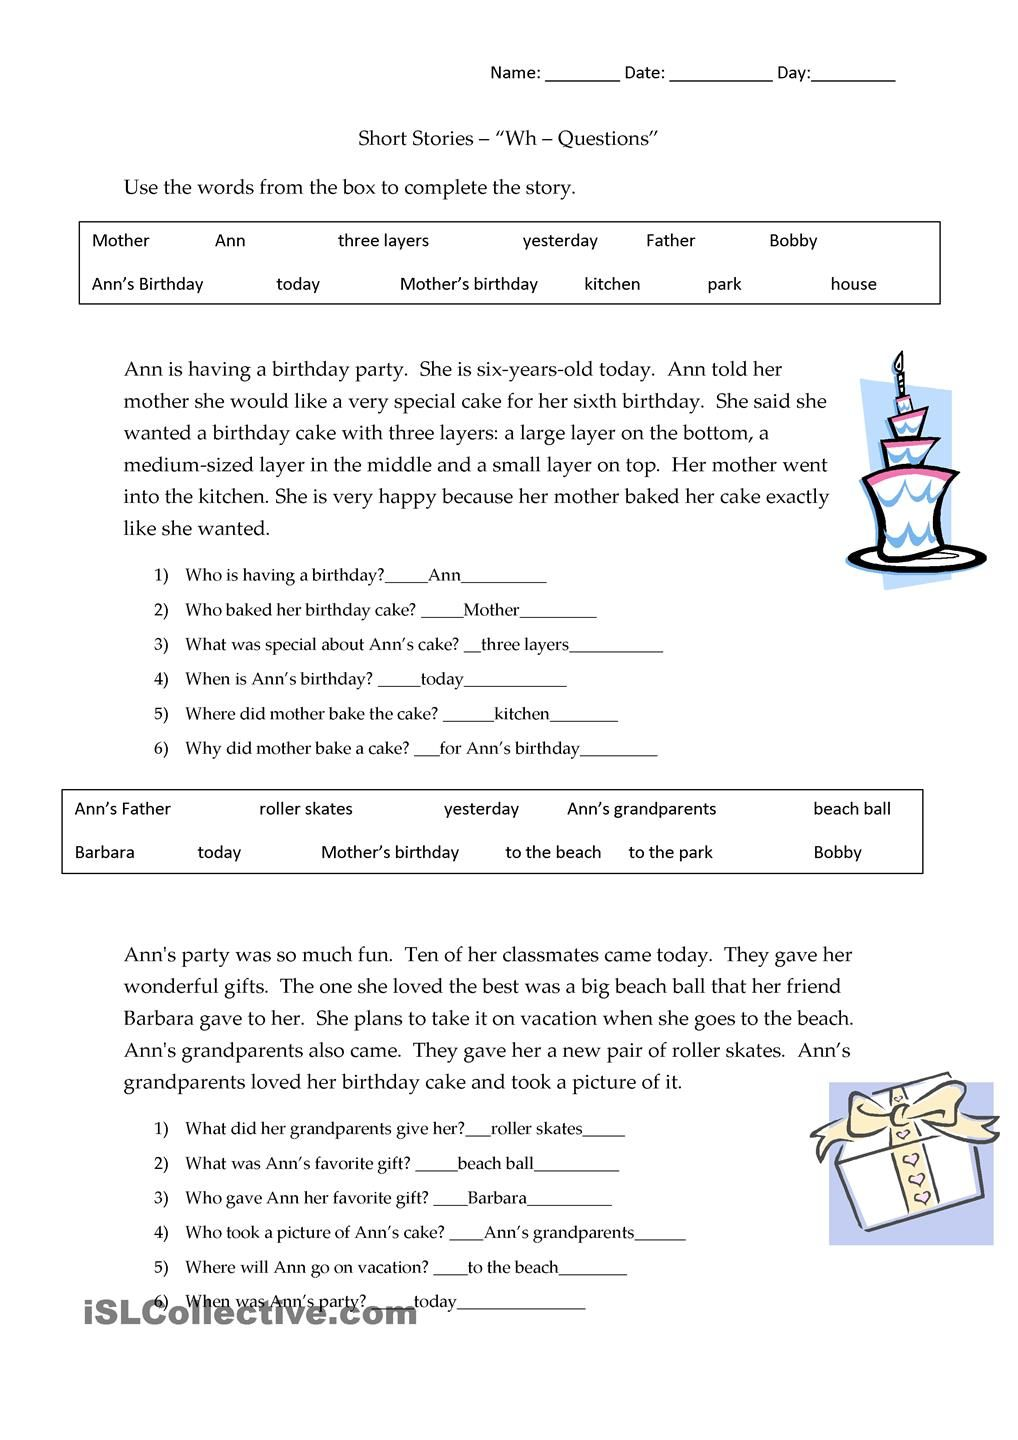 small resolution of Short Stories Wh-questions - answers   Wh questions worksheets